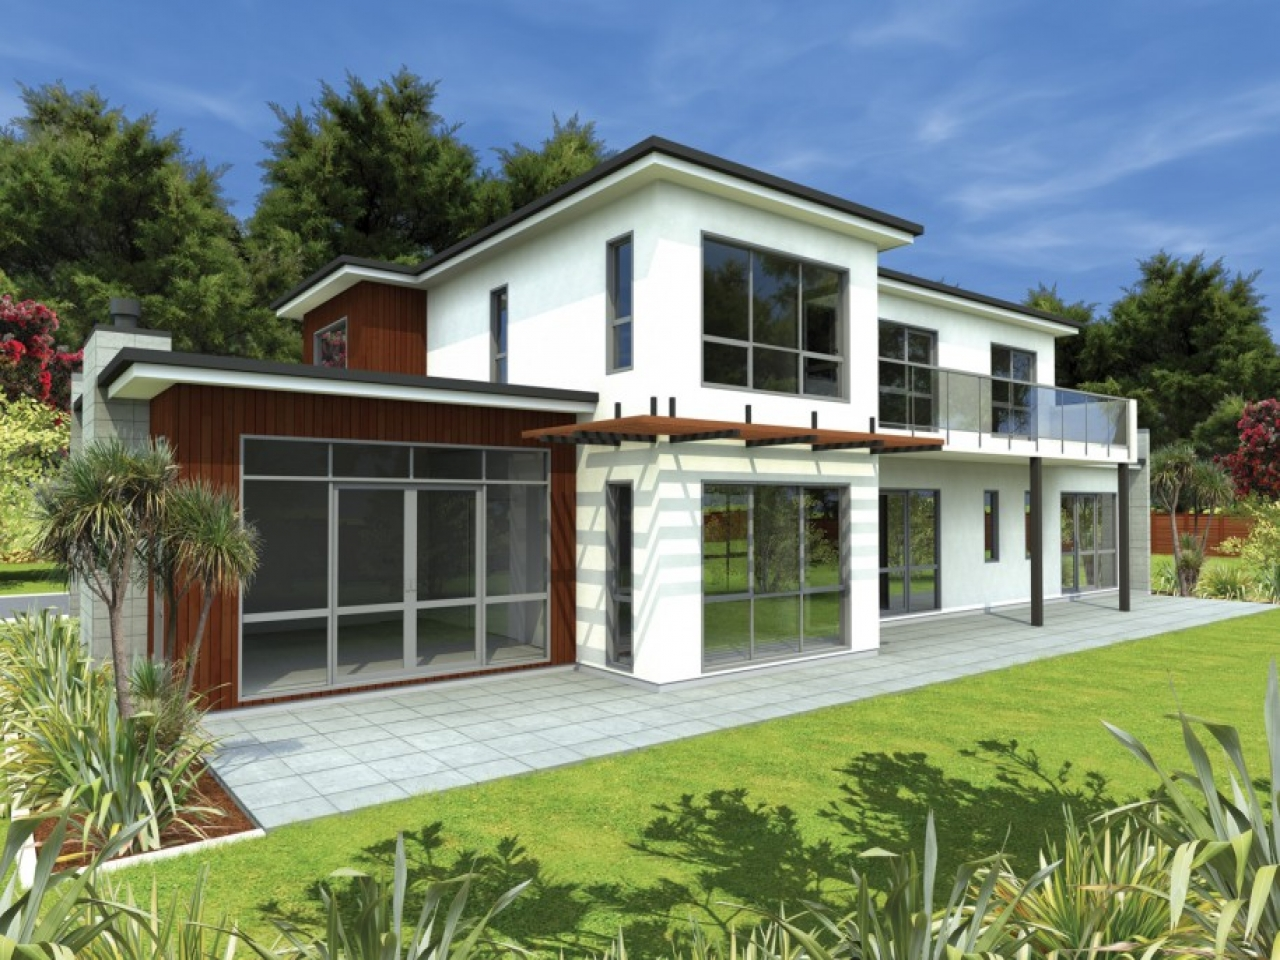 Small modern house designs philippines modern bungalow for Bungalow houses designs philippines images